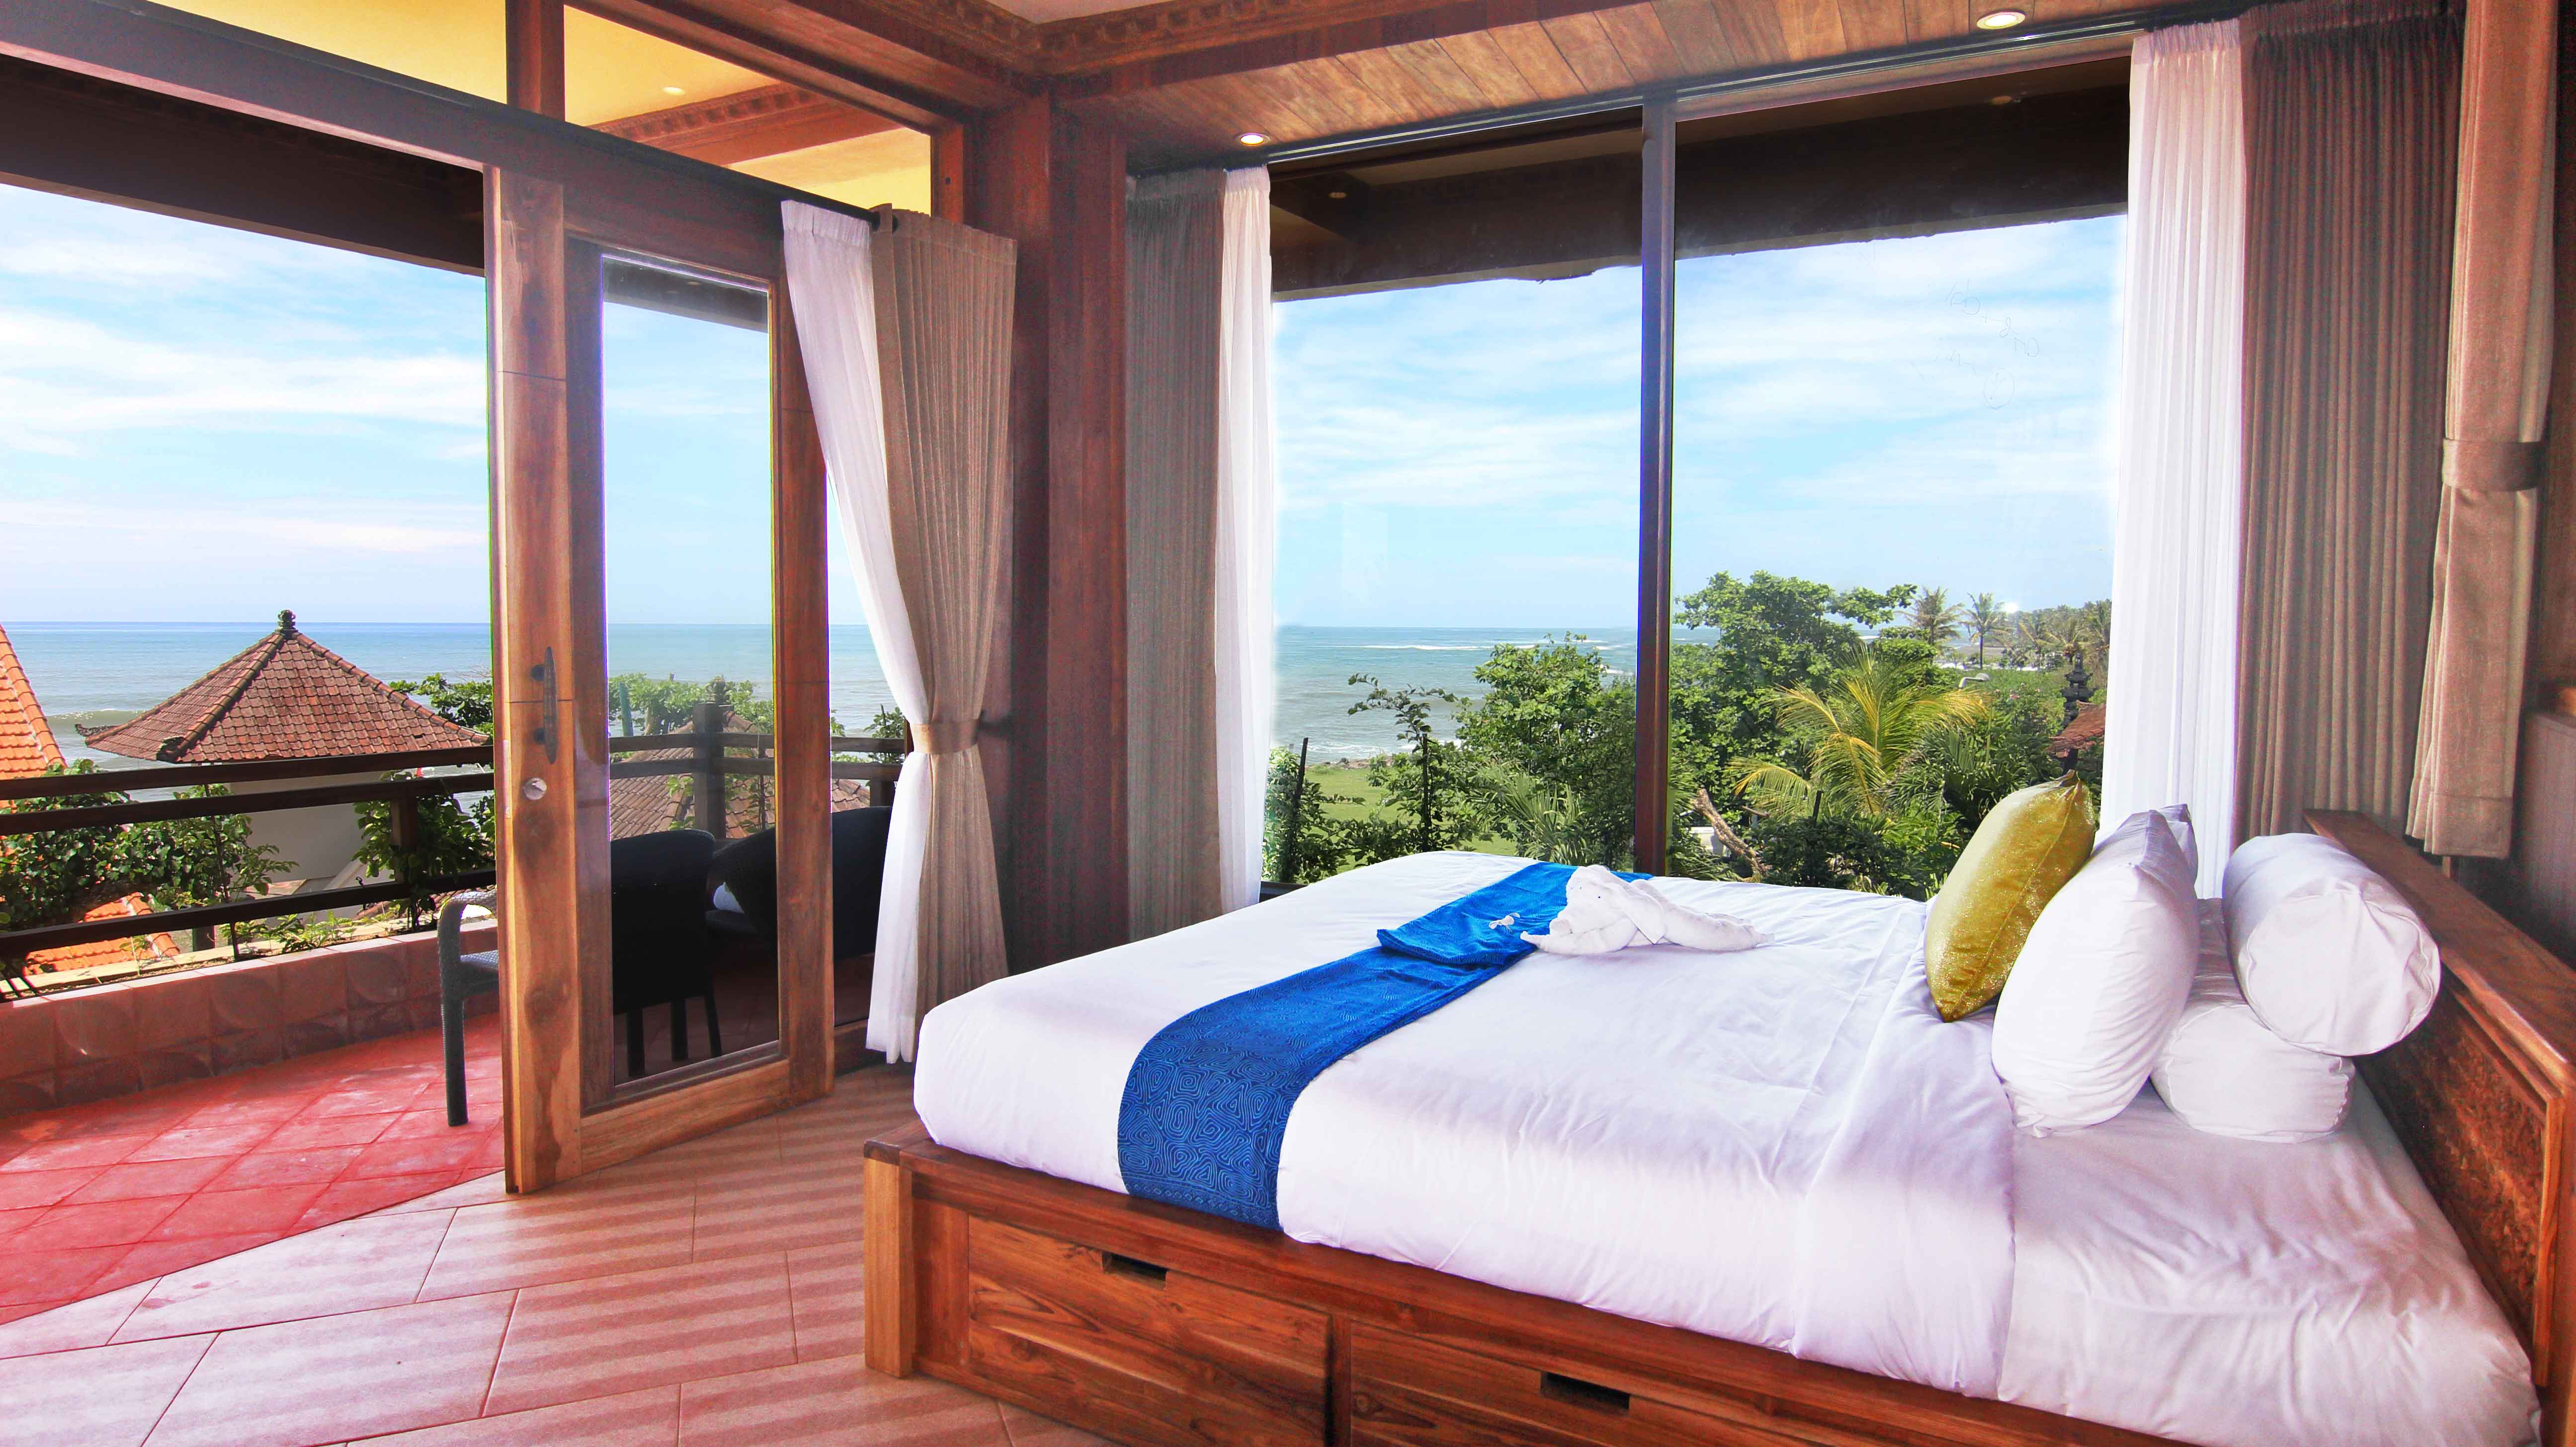 room-cheap-sale-room-discount-hot-deal-cheap-room---ocean-view-rooftop---nice-view